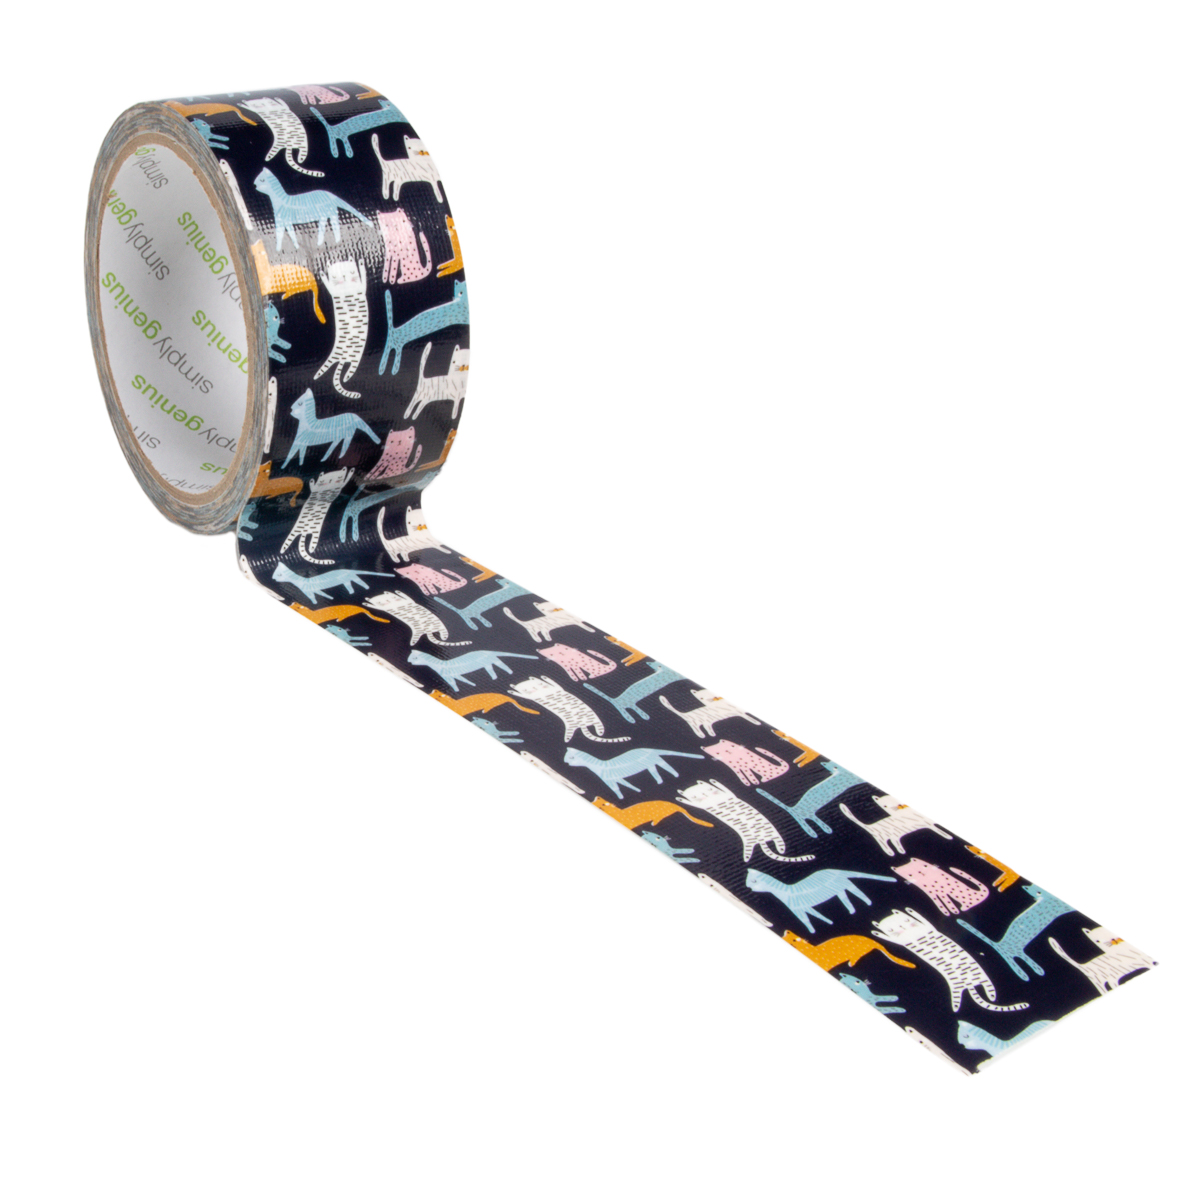 Simply-Genius-Duct-Tape-Roll-Colors-Patterns-Craft-Supplies-Colored-amp-Patterned thumbnail 32